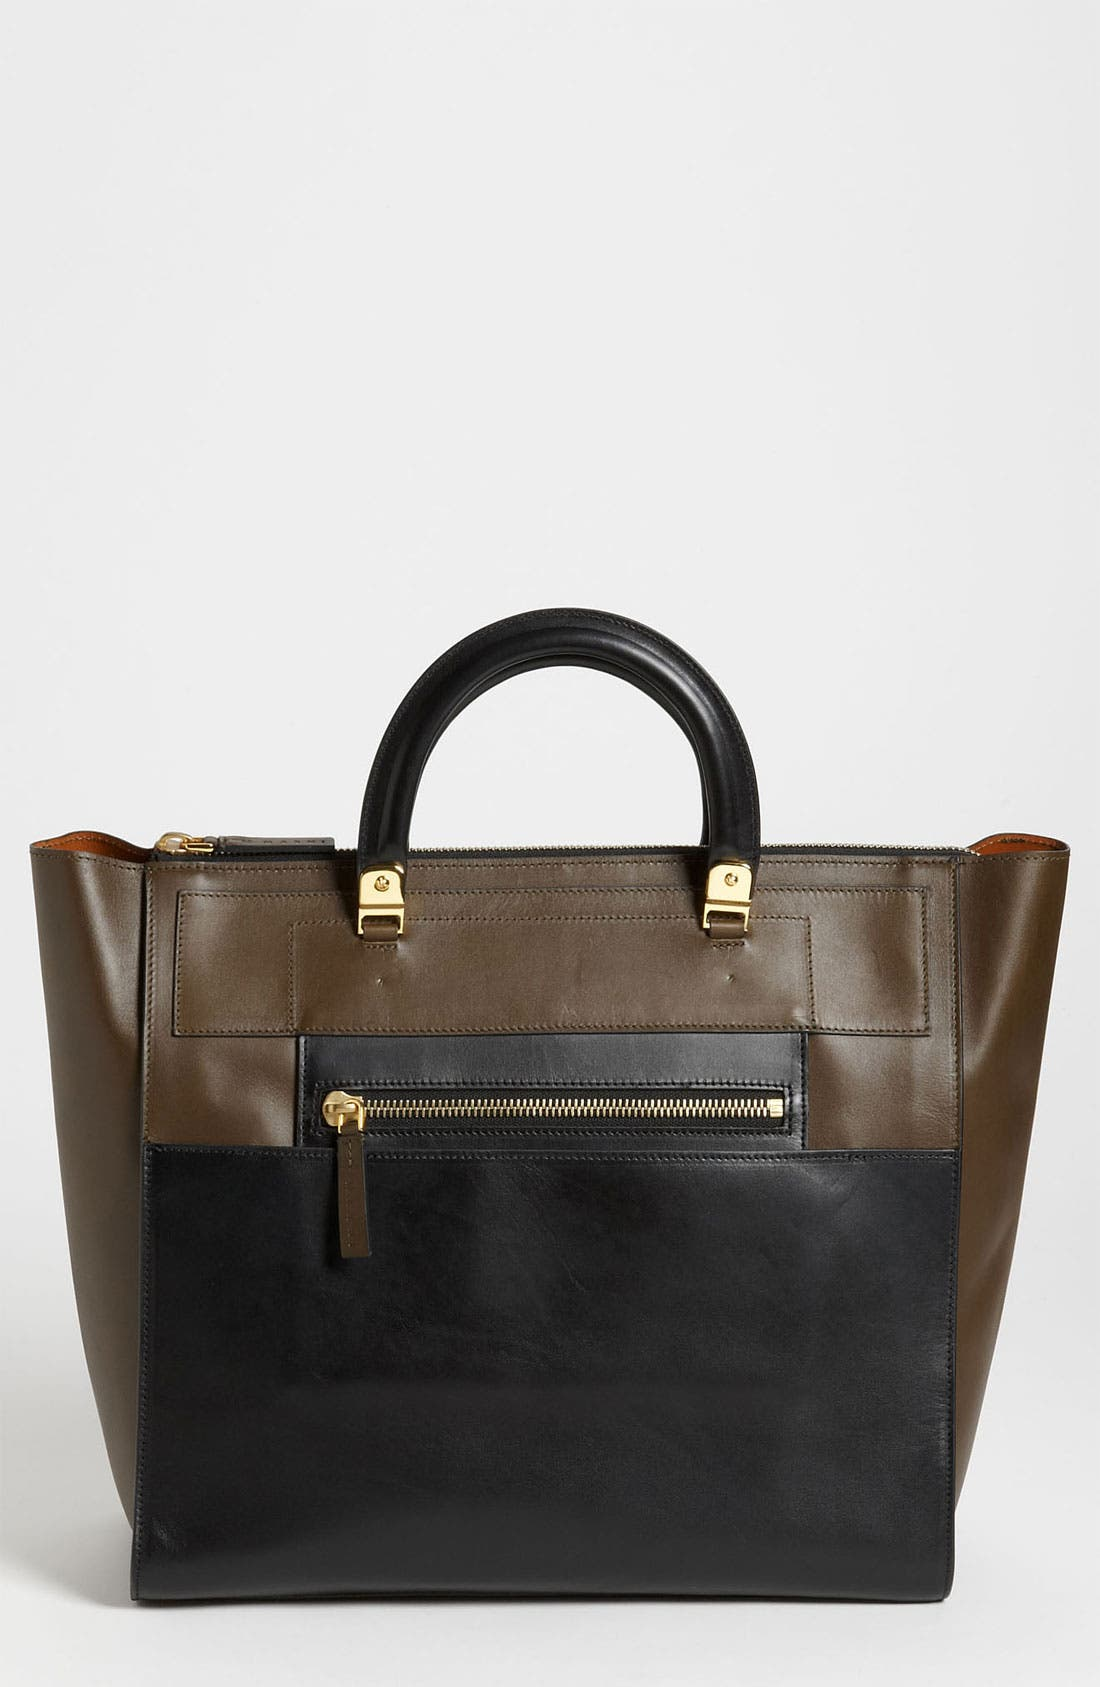 Alternate Image 1 Selected - Marni 'Large' Leather Tote